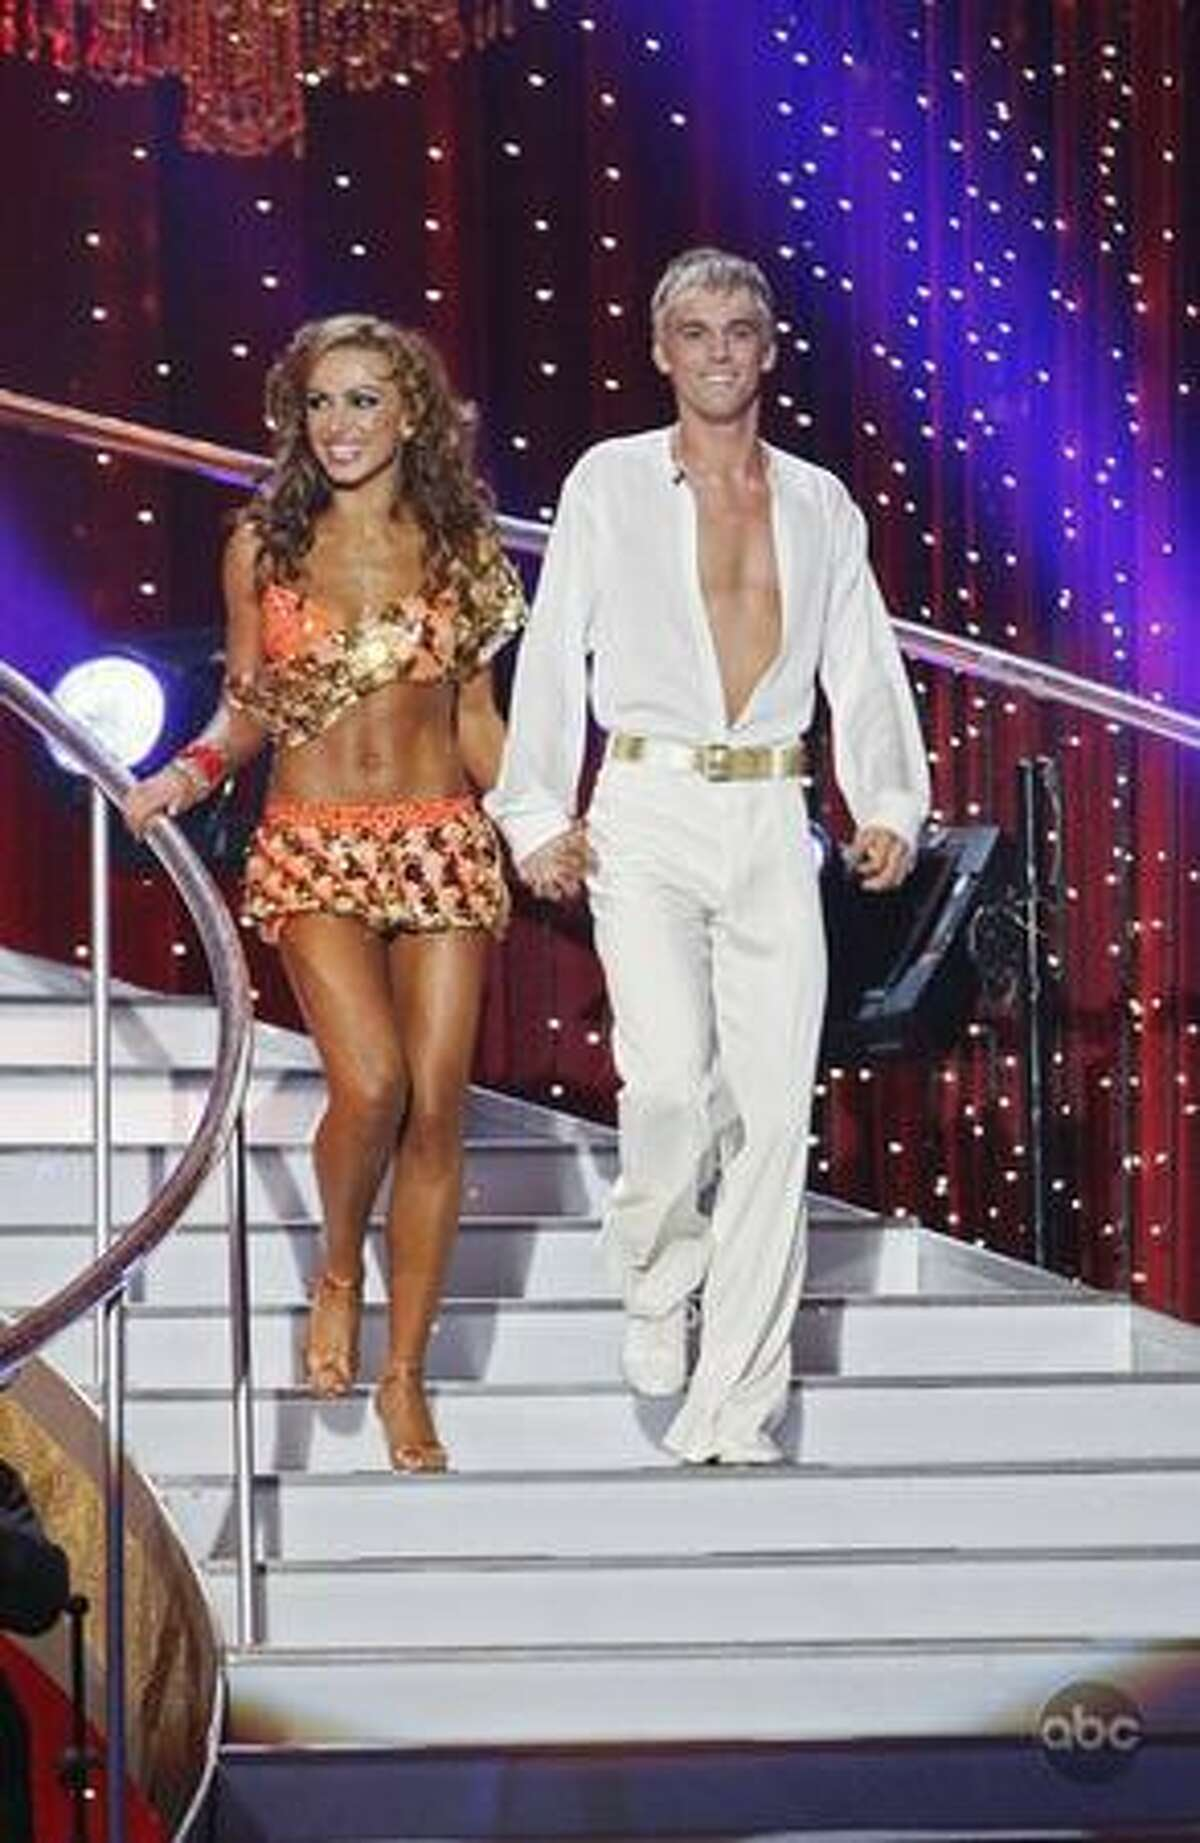 Professional dancer Karina Smirnoff and singer Aaron Carter.